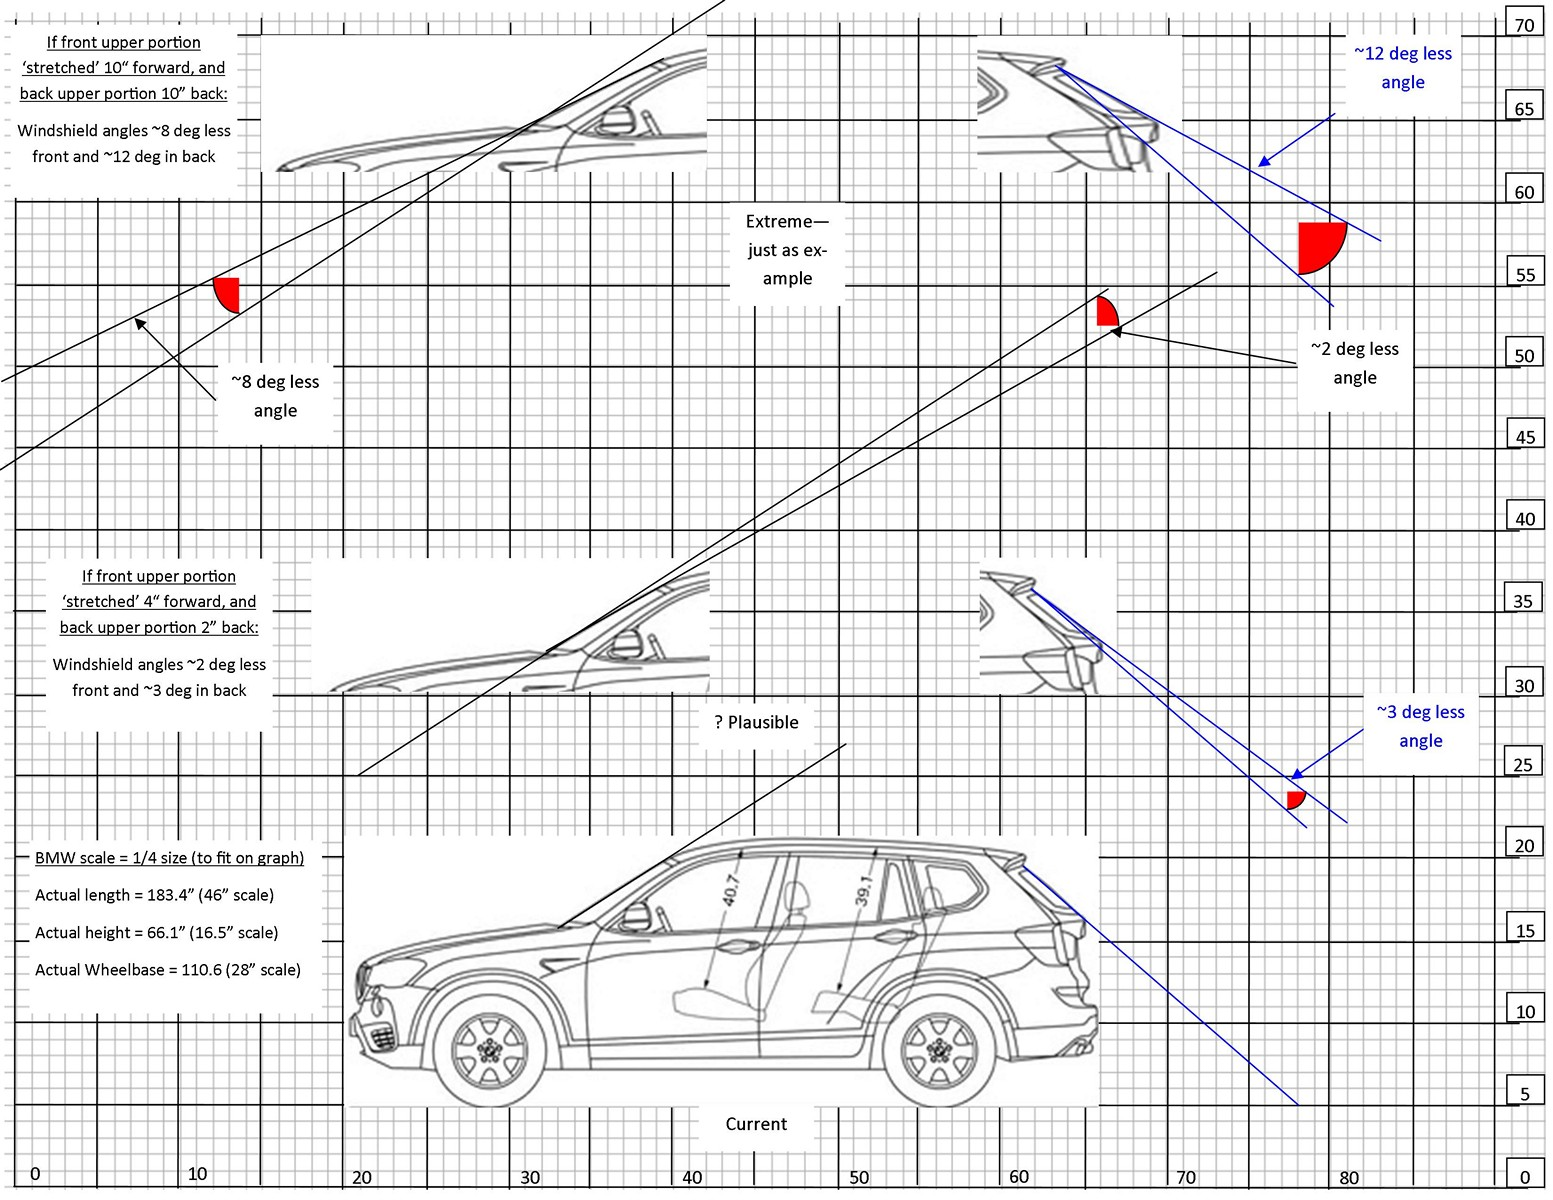 Automotive blueprints besides Dimensions Of Bmw 3 Series Touring together with Volkswagen tiguan 20 tdi 4motion ktcm5334 besides Bmw X5 2017 Width in addition Bmw X4 Interior Dimensions. on bmw x3 size dimensions